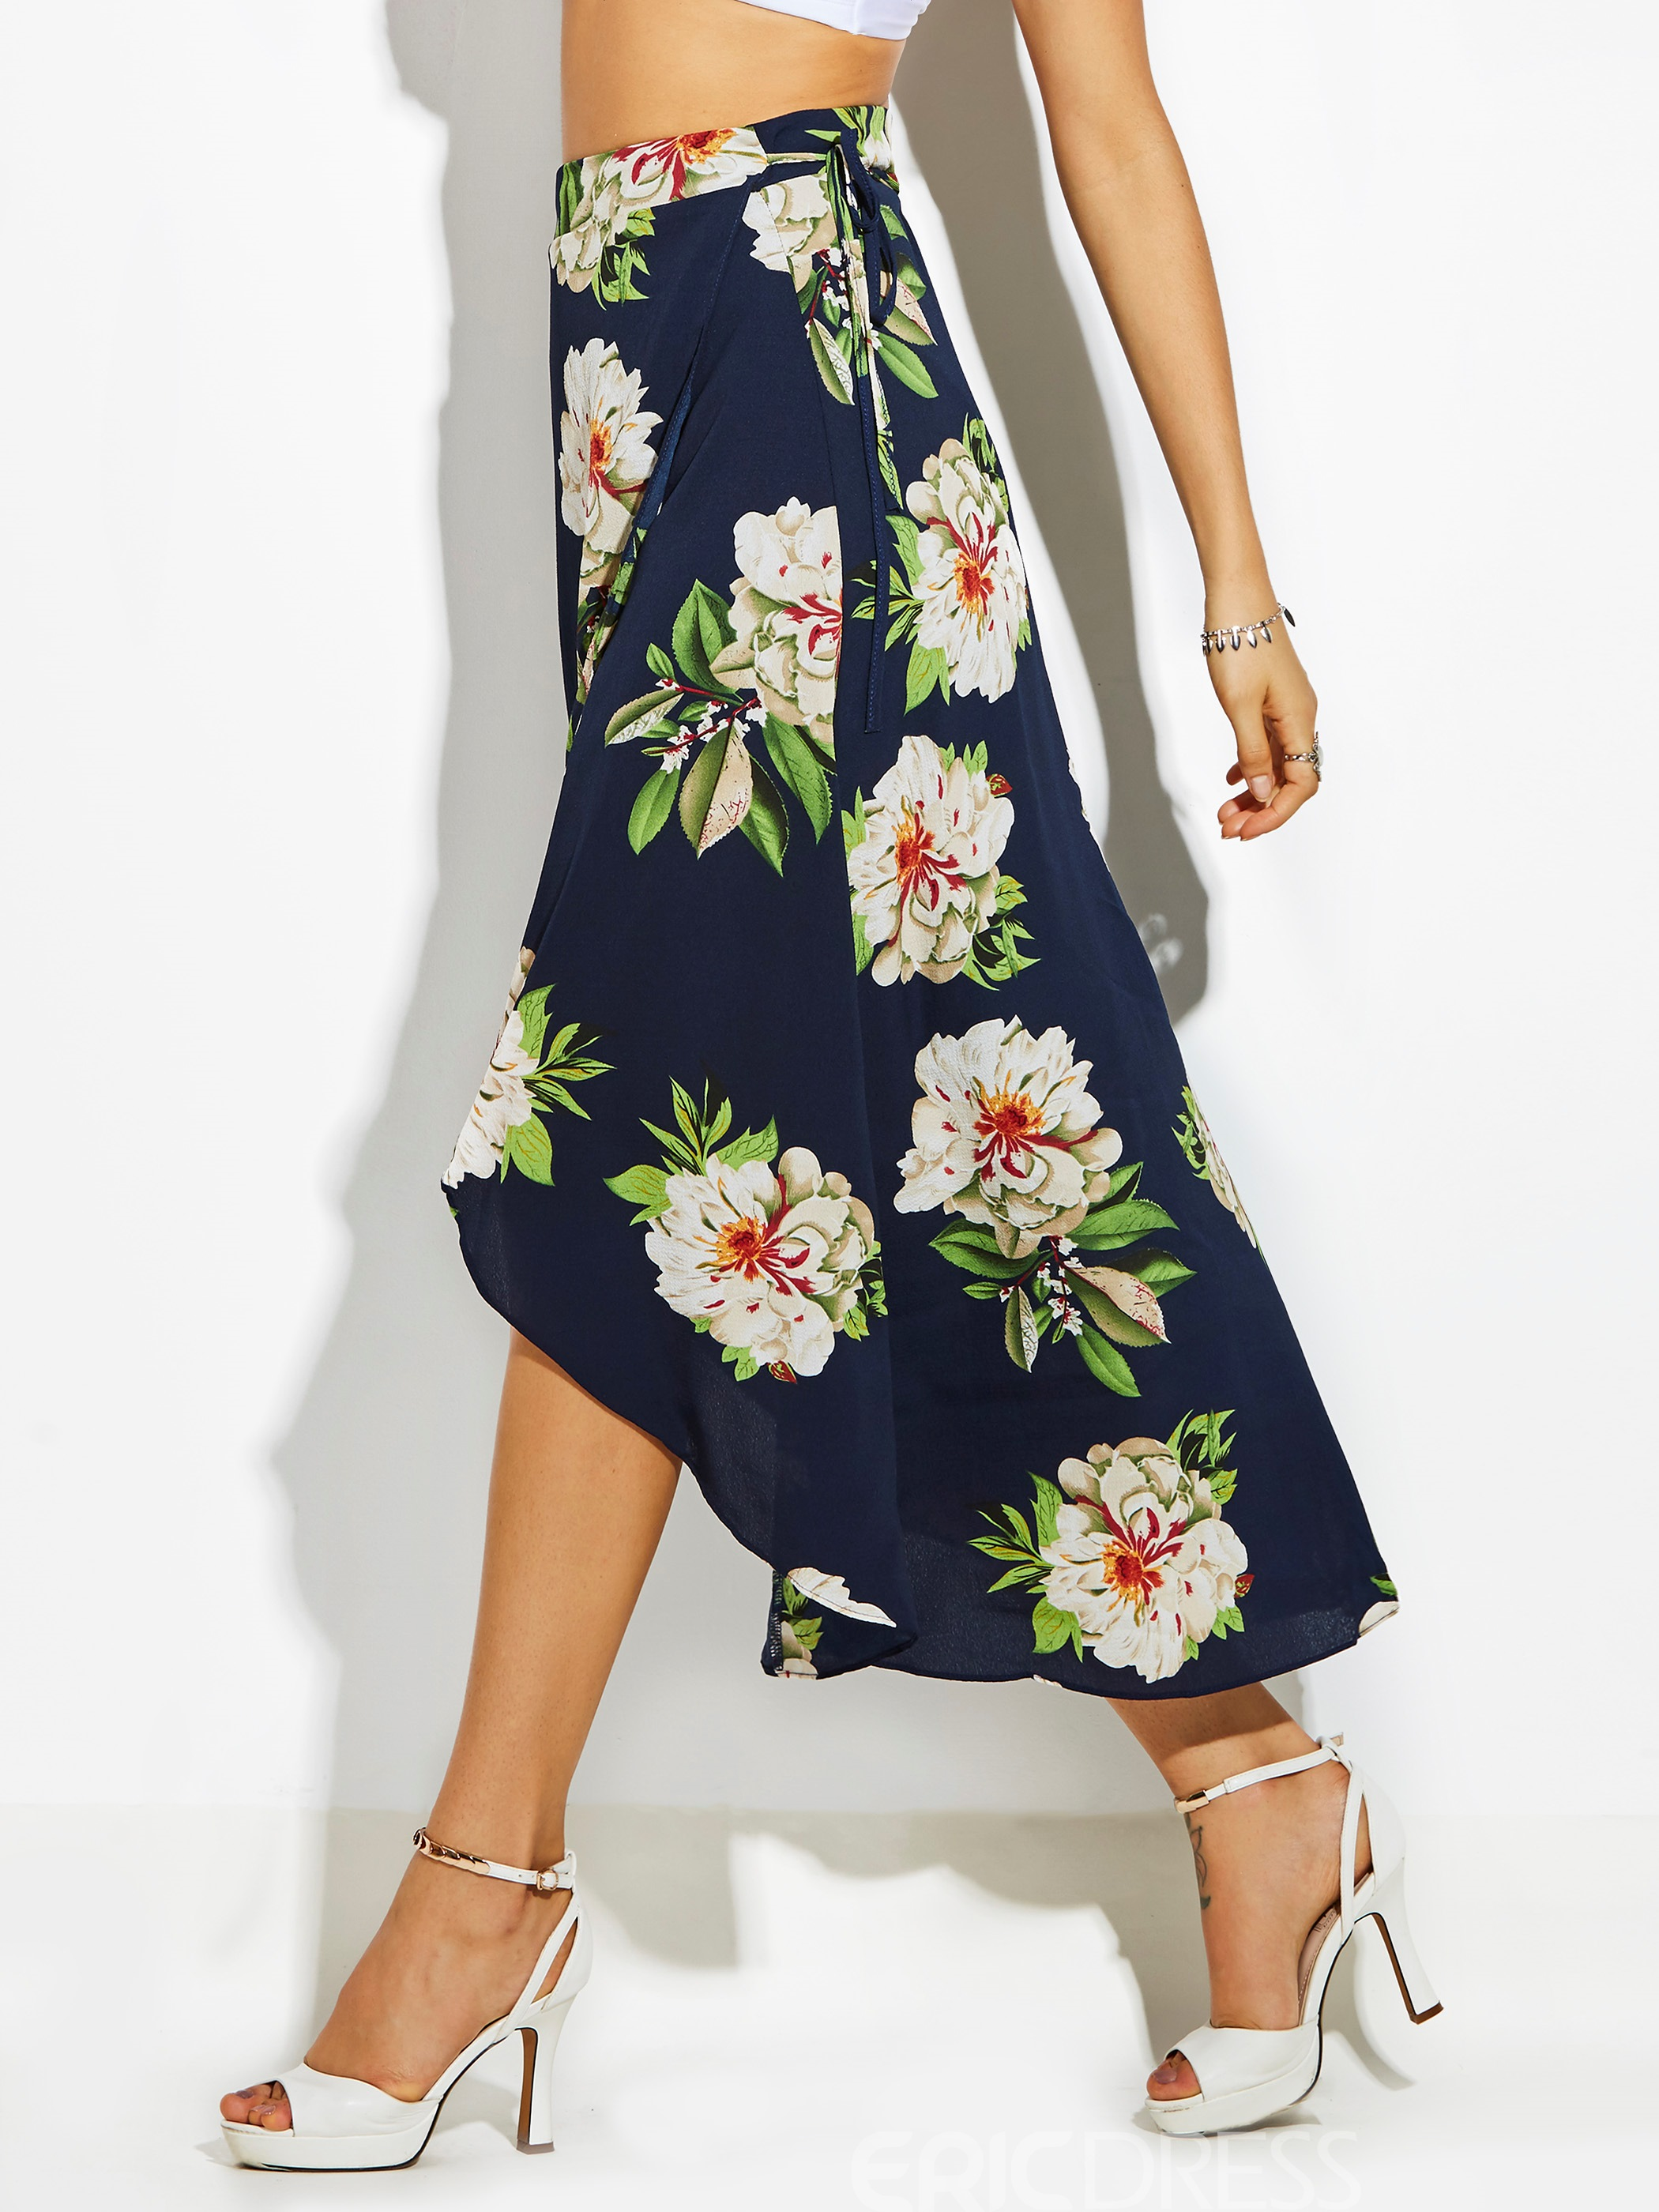 High-Waist Flower Print Asymmetrical Women's Skirt